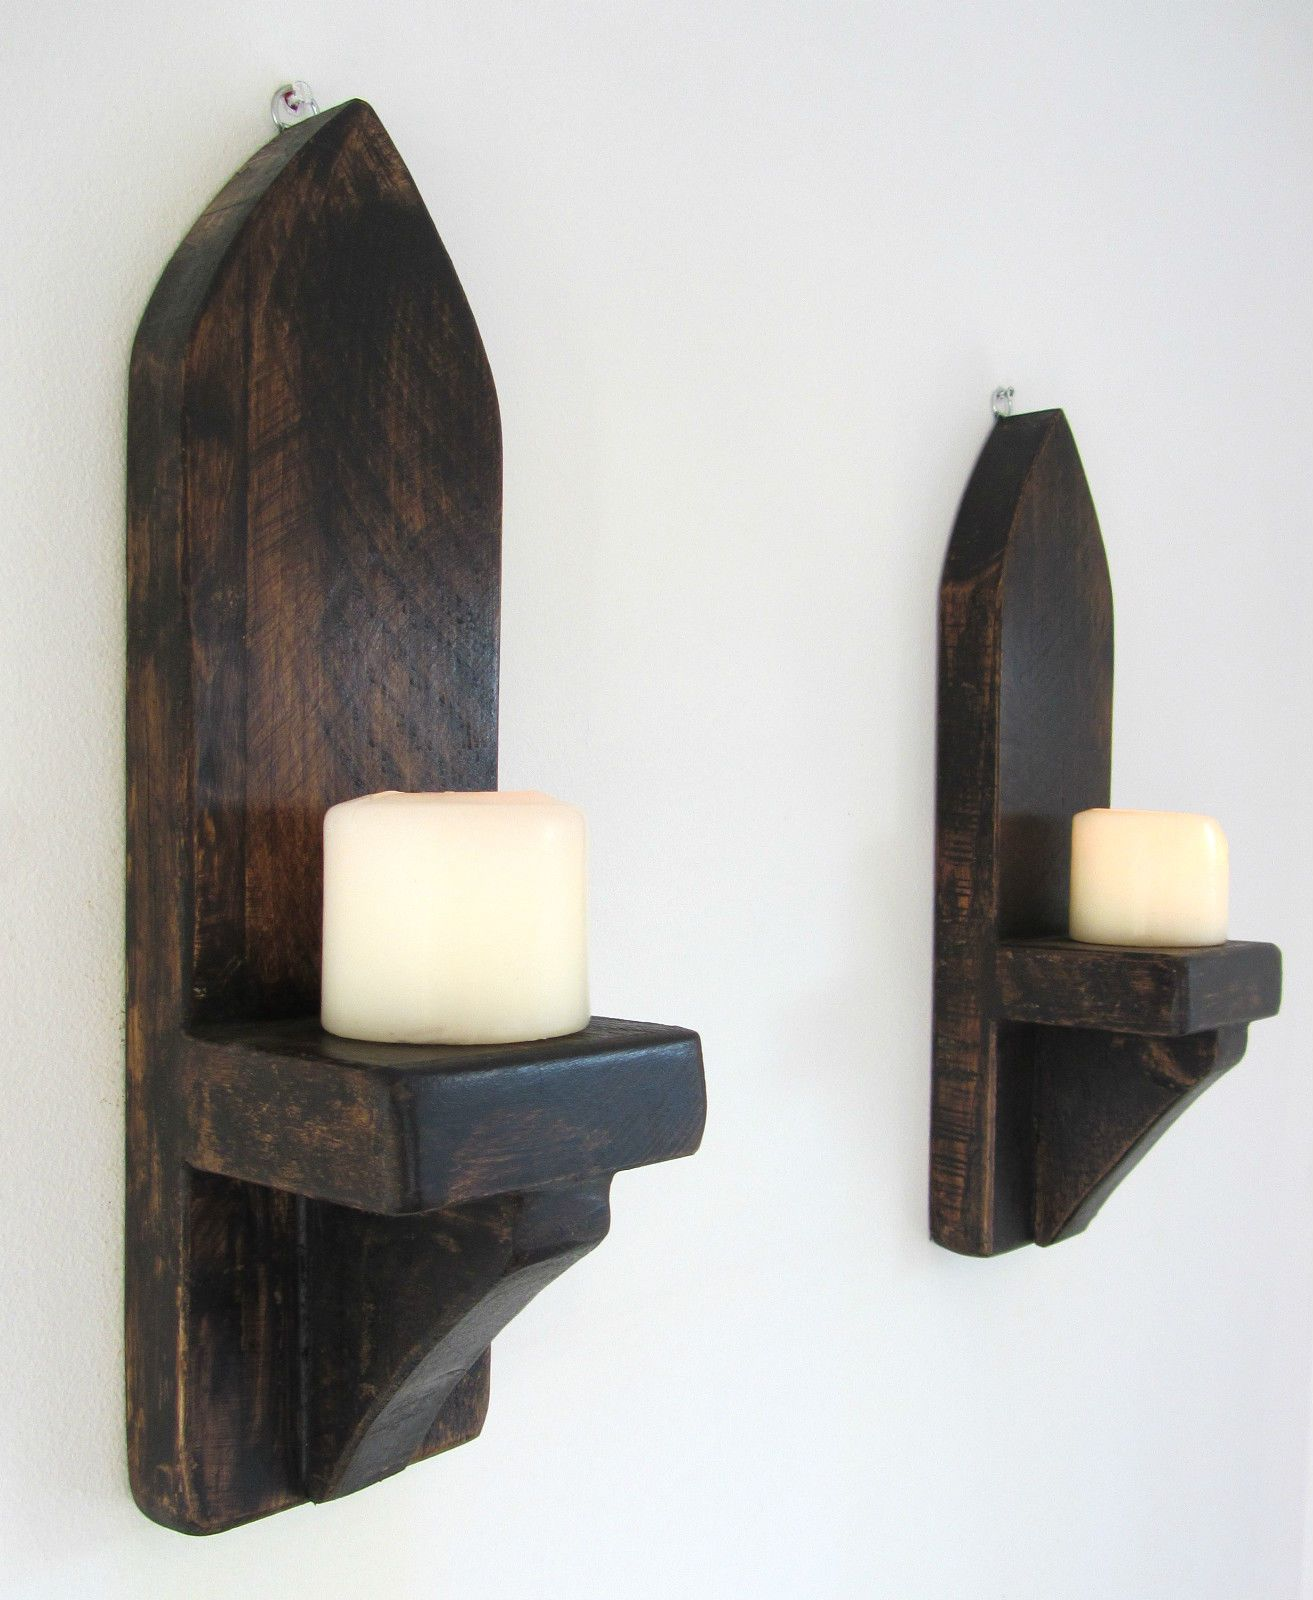 Pair of 40cm rustic solid wood dark wax gothic arch wall sconce